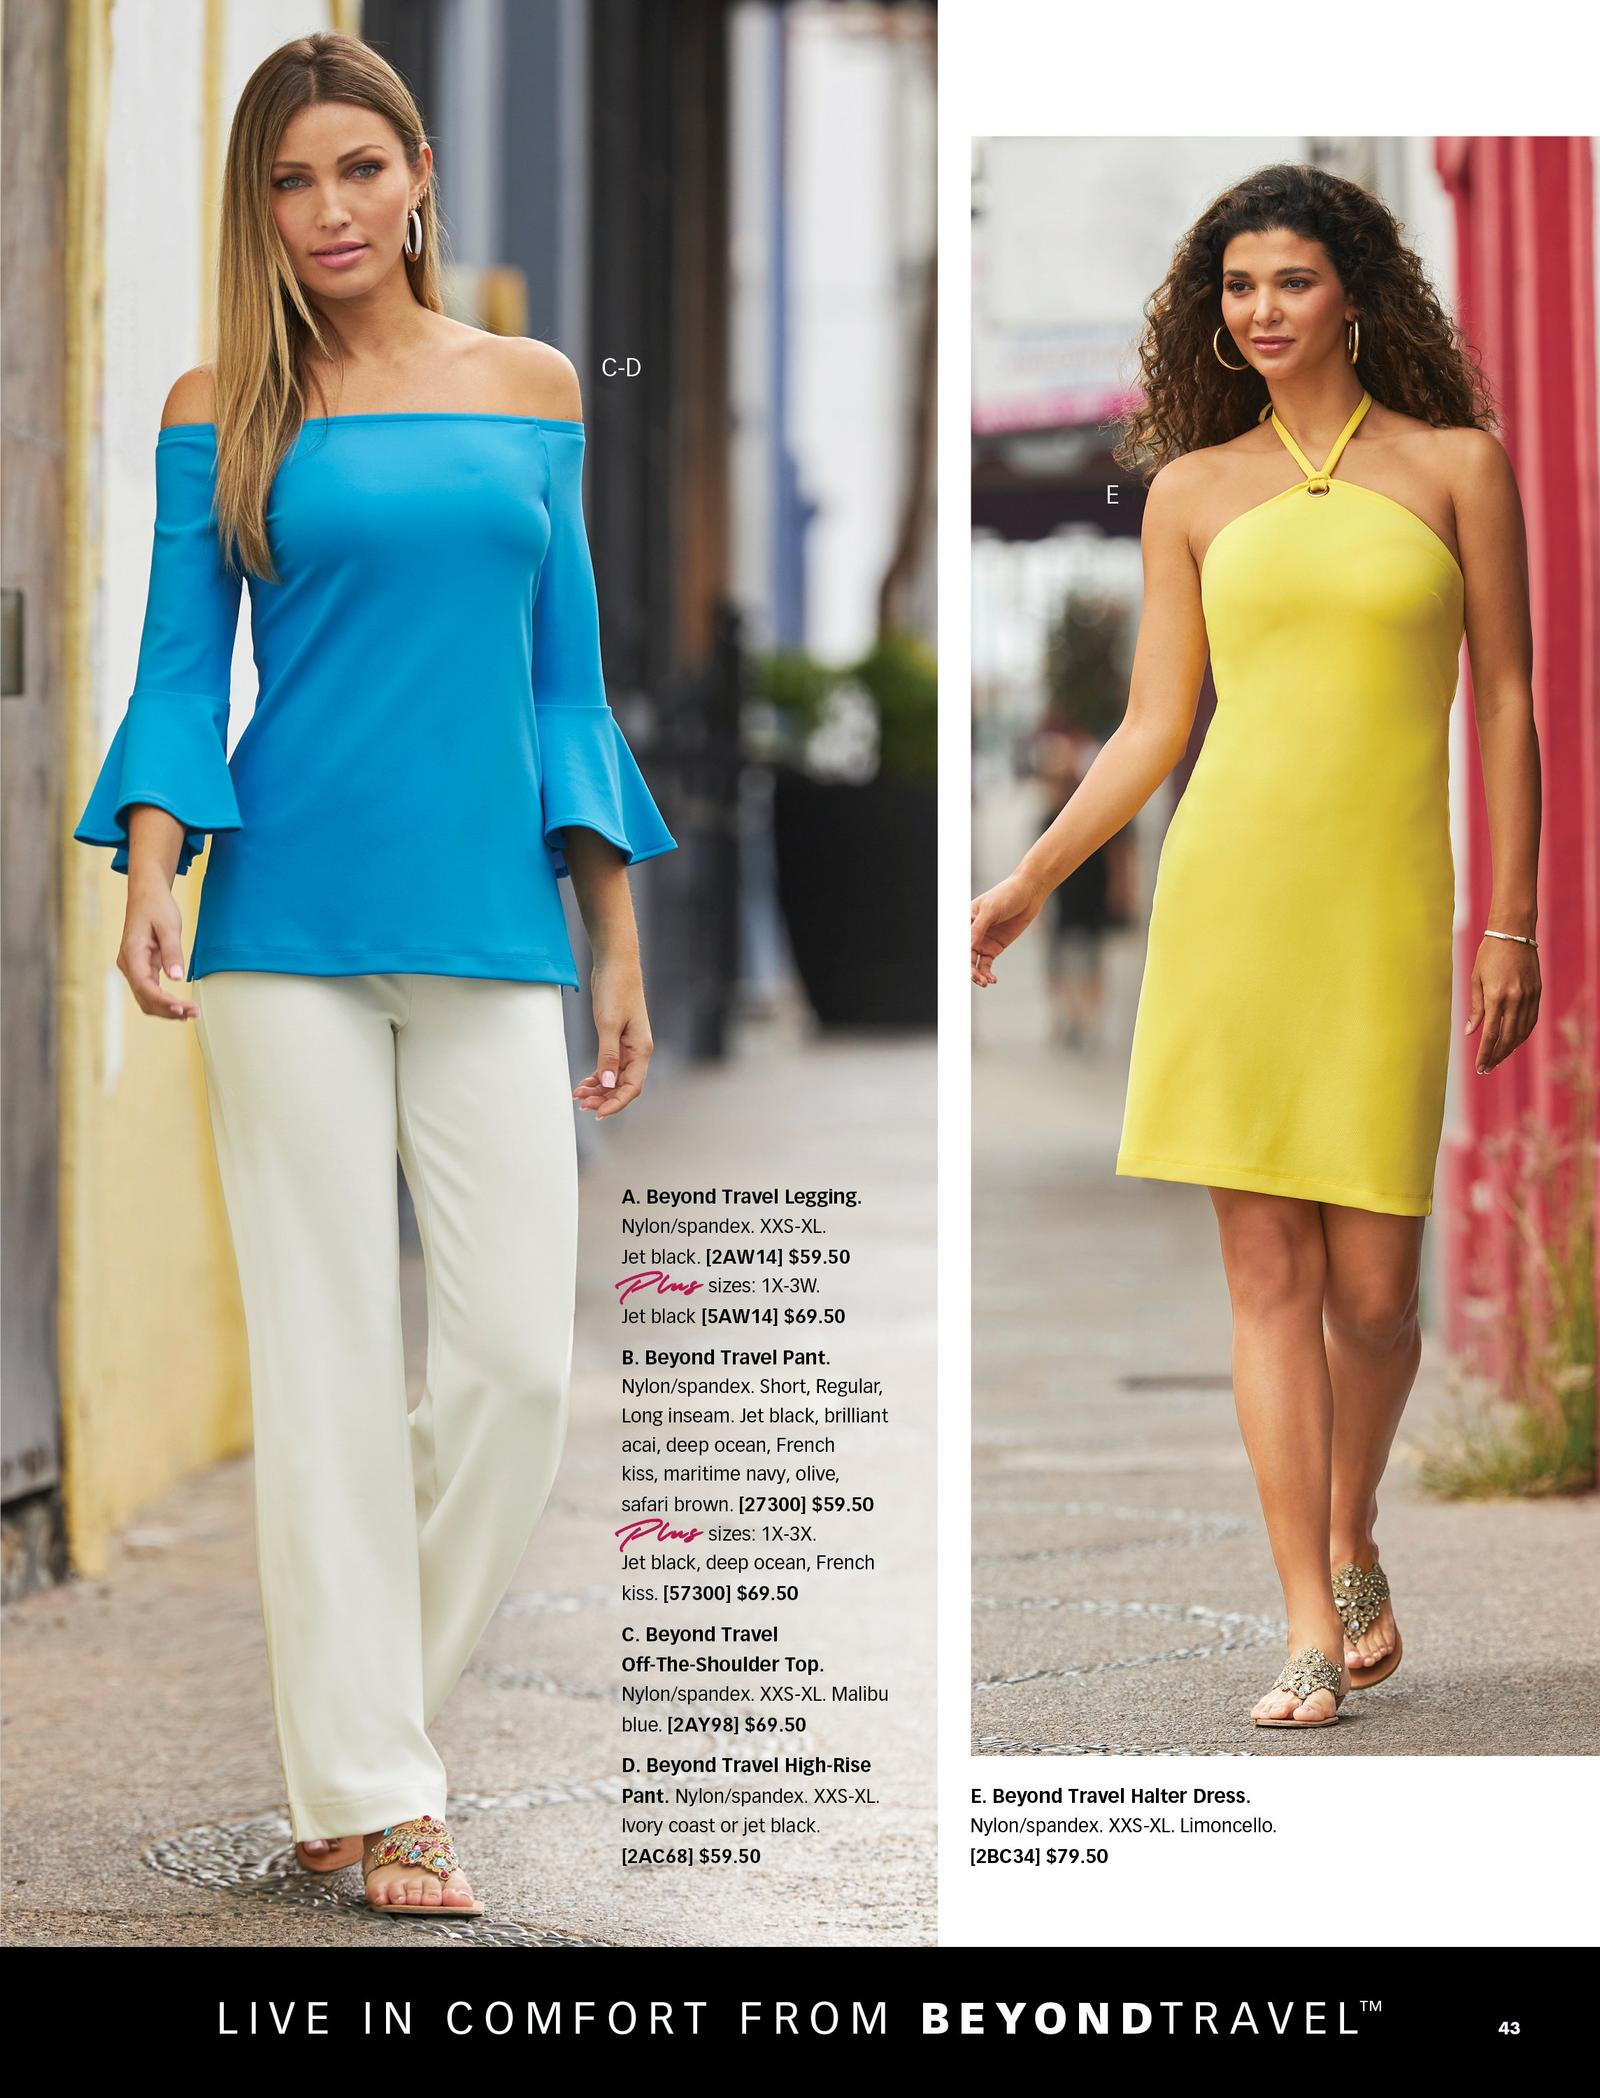 left model wearing a light blue off-the-shoulder flare-sleeve long-sleeve top, off-white high-rise pants, and multicolored jewel sandals. right model wearing a yellow halter neck dress and gold jeweled sandals.